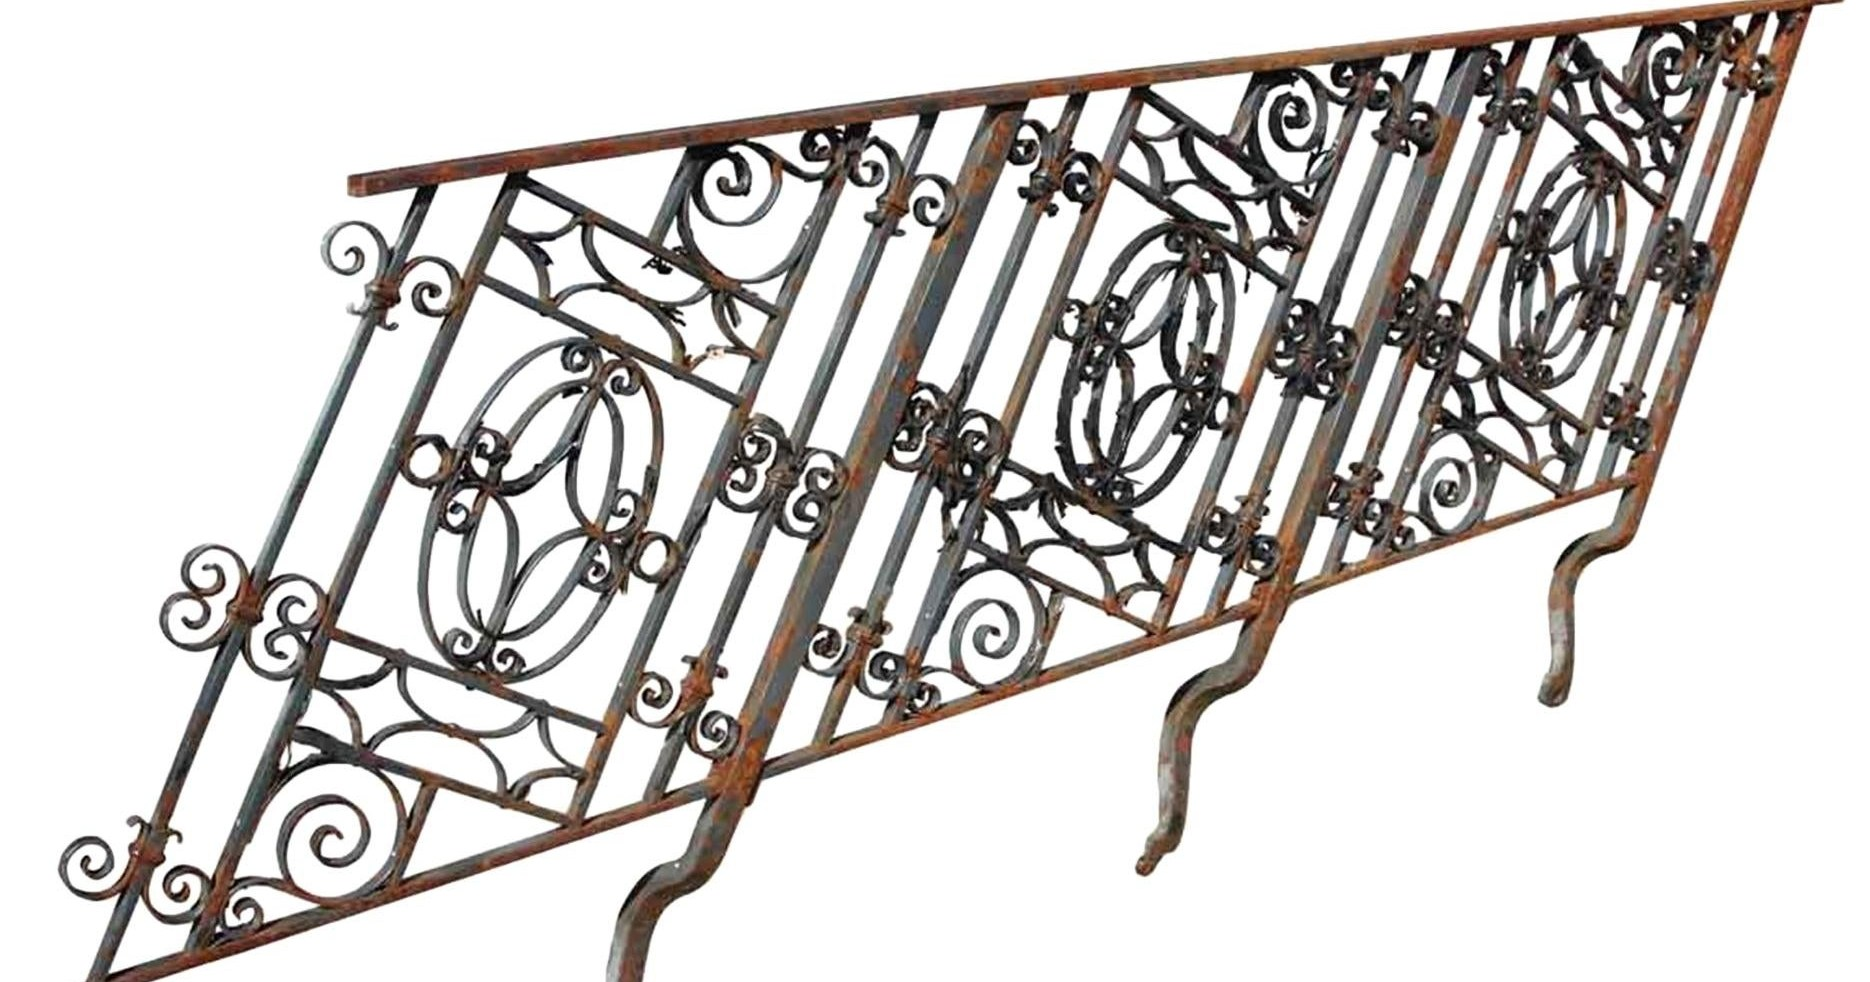 1910 Georgian Wrought Iron Stair Railing For Sale At 1Stdibs | Stair Banisters For Sale